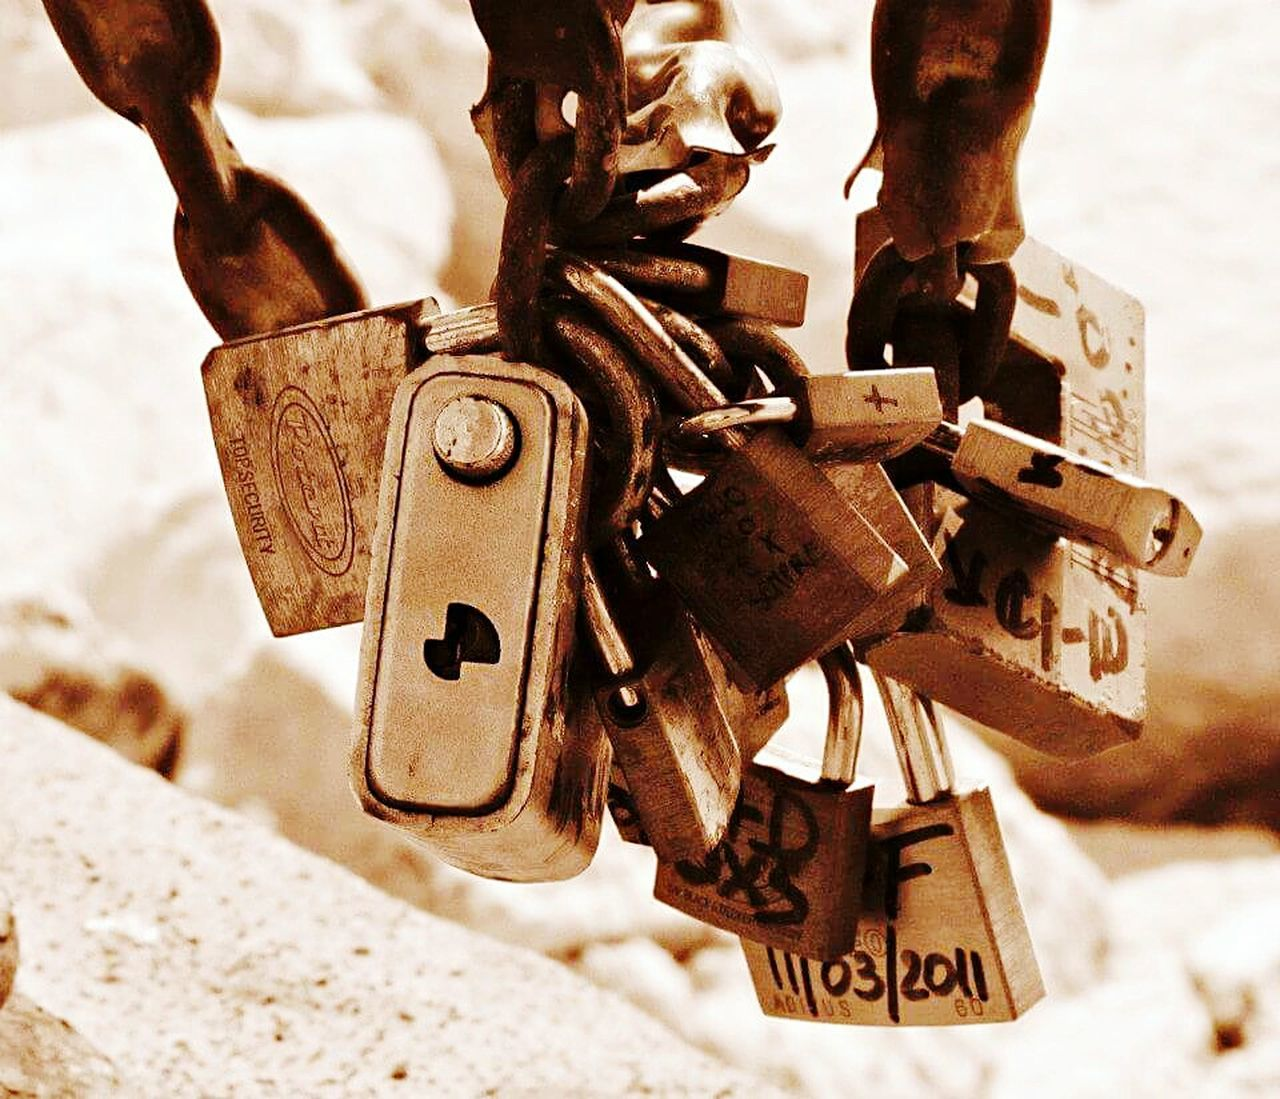 padlock, lock, hanging, love lock, security, metal, love, close-up, hope, luck, no people, rusty, variation, day, outdoors, focus on foreground, large group of objects